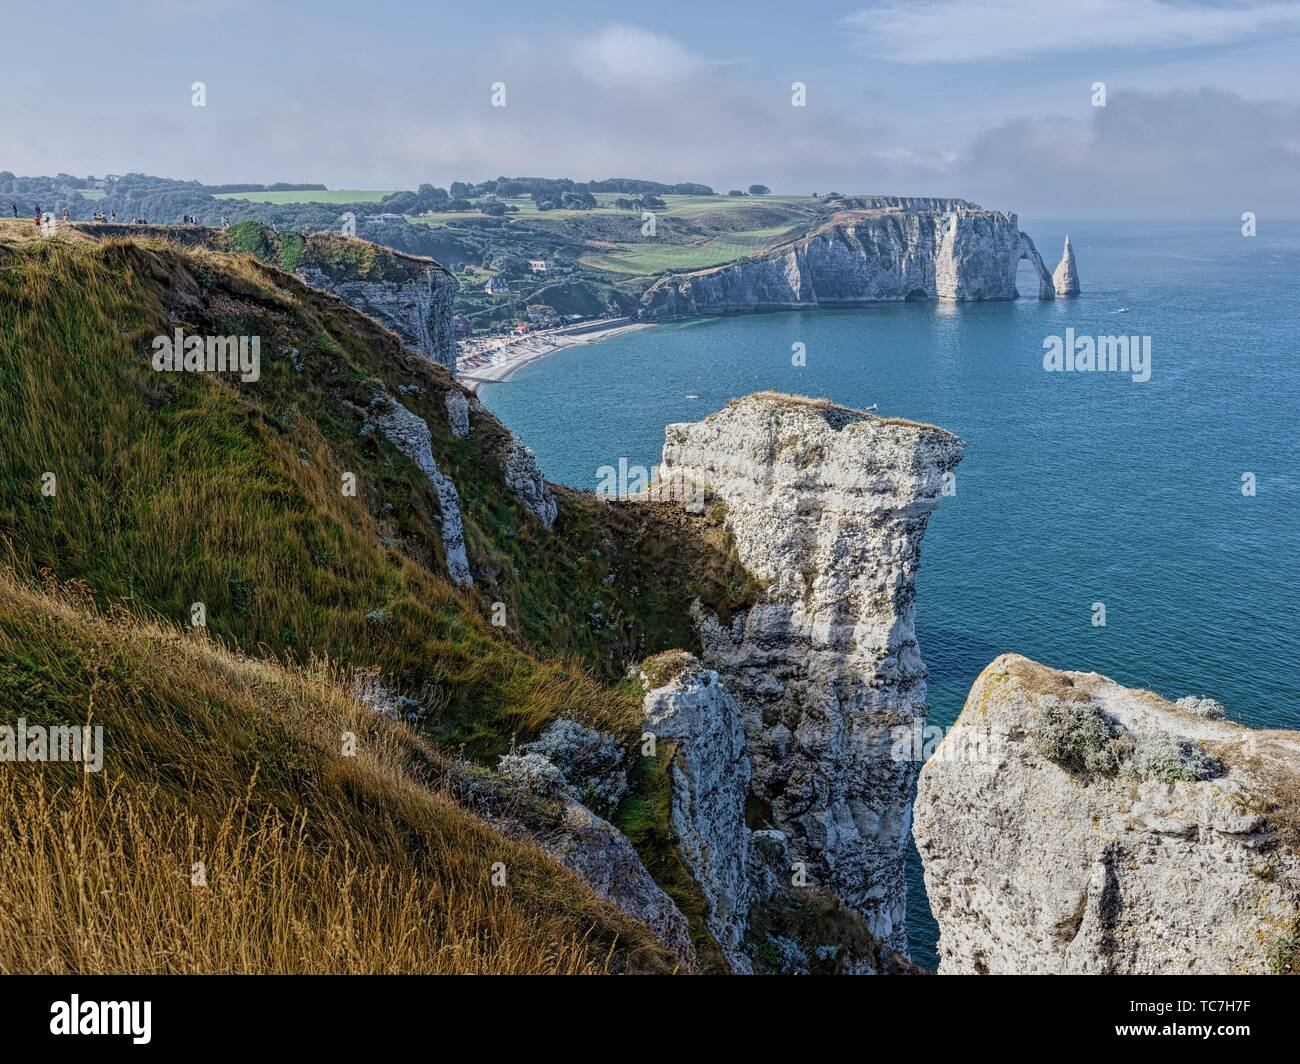 View from the Porte d'Amont Cliffs with the Falaise d'Aval in the background, Étretat; Normandy; France. Stock Photo